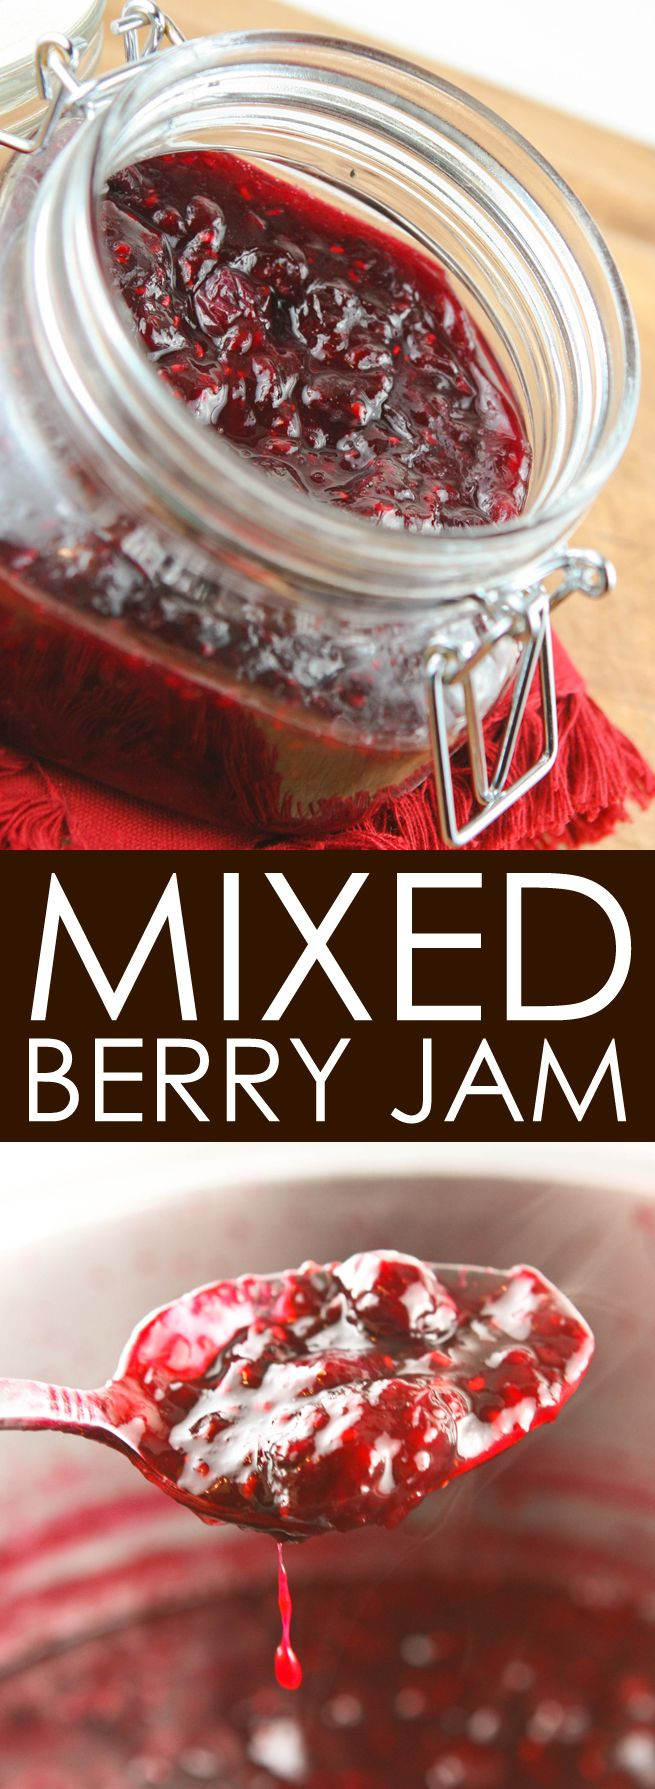 Mixed-Berry Jam | This is such an easy homemade jelly and turns out perfectly every single time! Delicious!